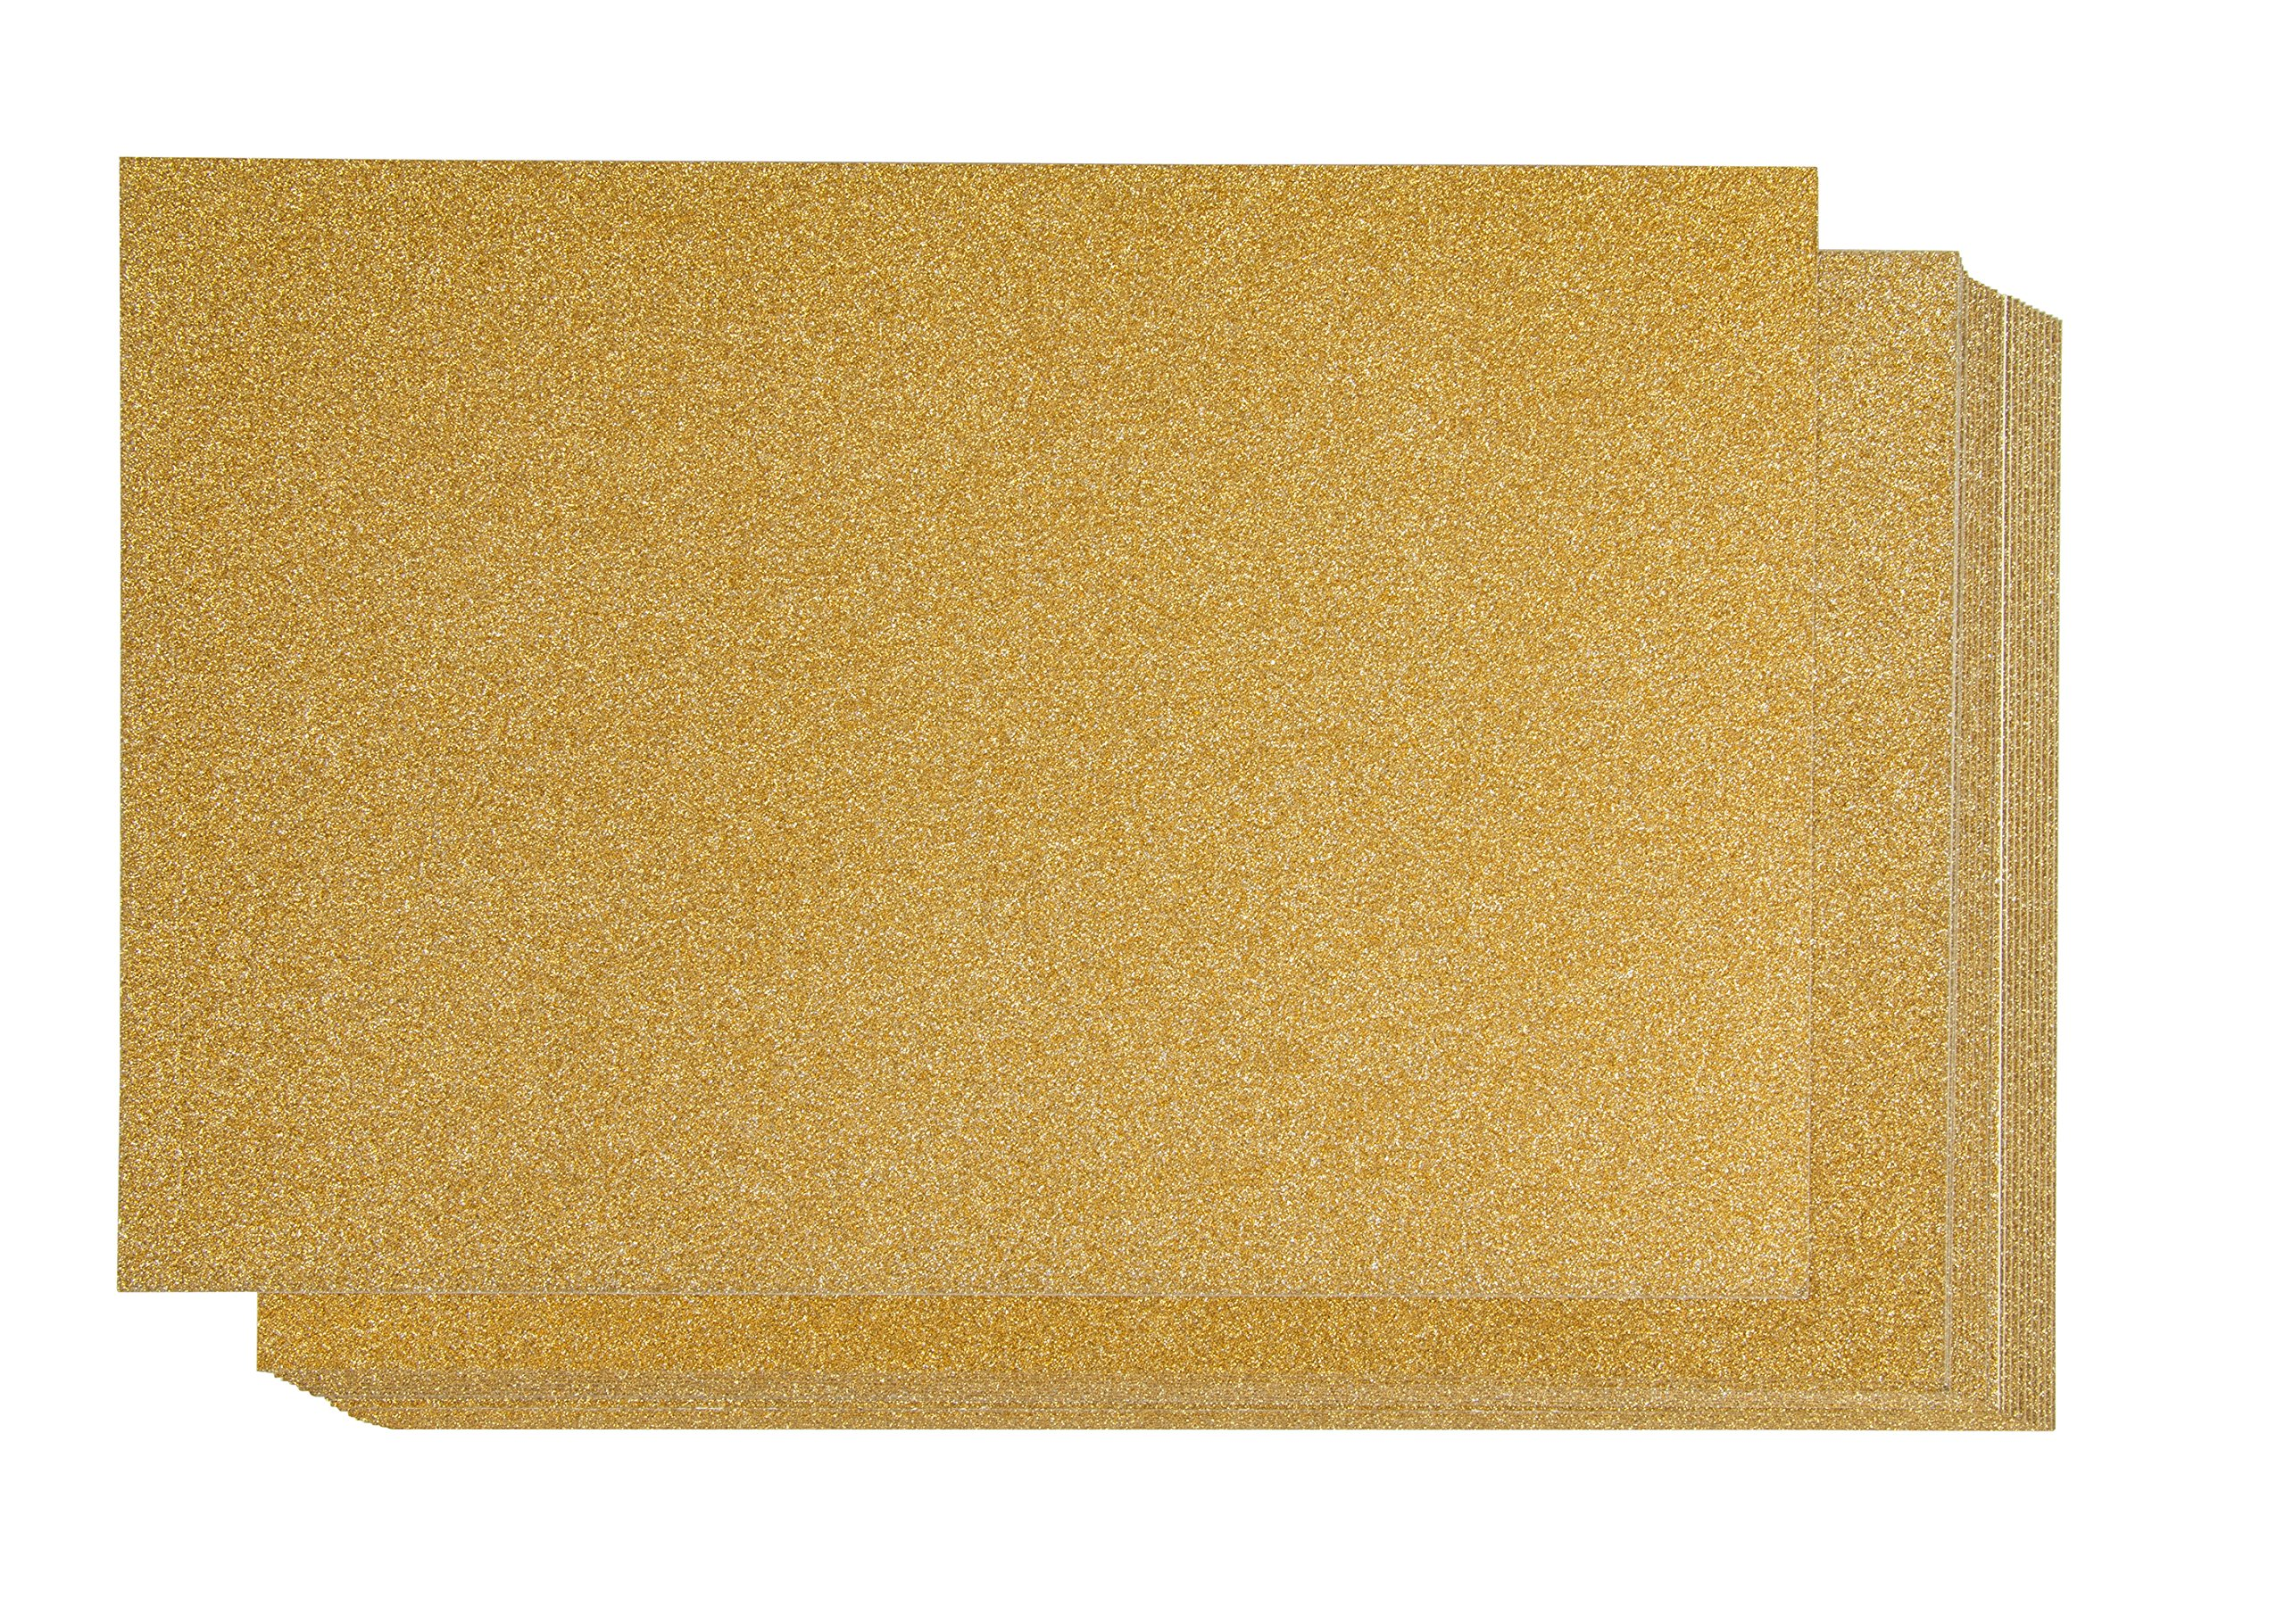 Glitter Cardstock Paper - 24-Pack Gold Glitter Paper for DIY Craft Projects, Birthday Party Decorations, Scrapbook, Double-Sided, 250GSM, 8 x 12 inches